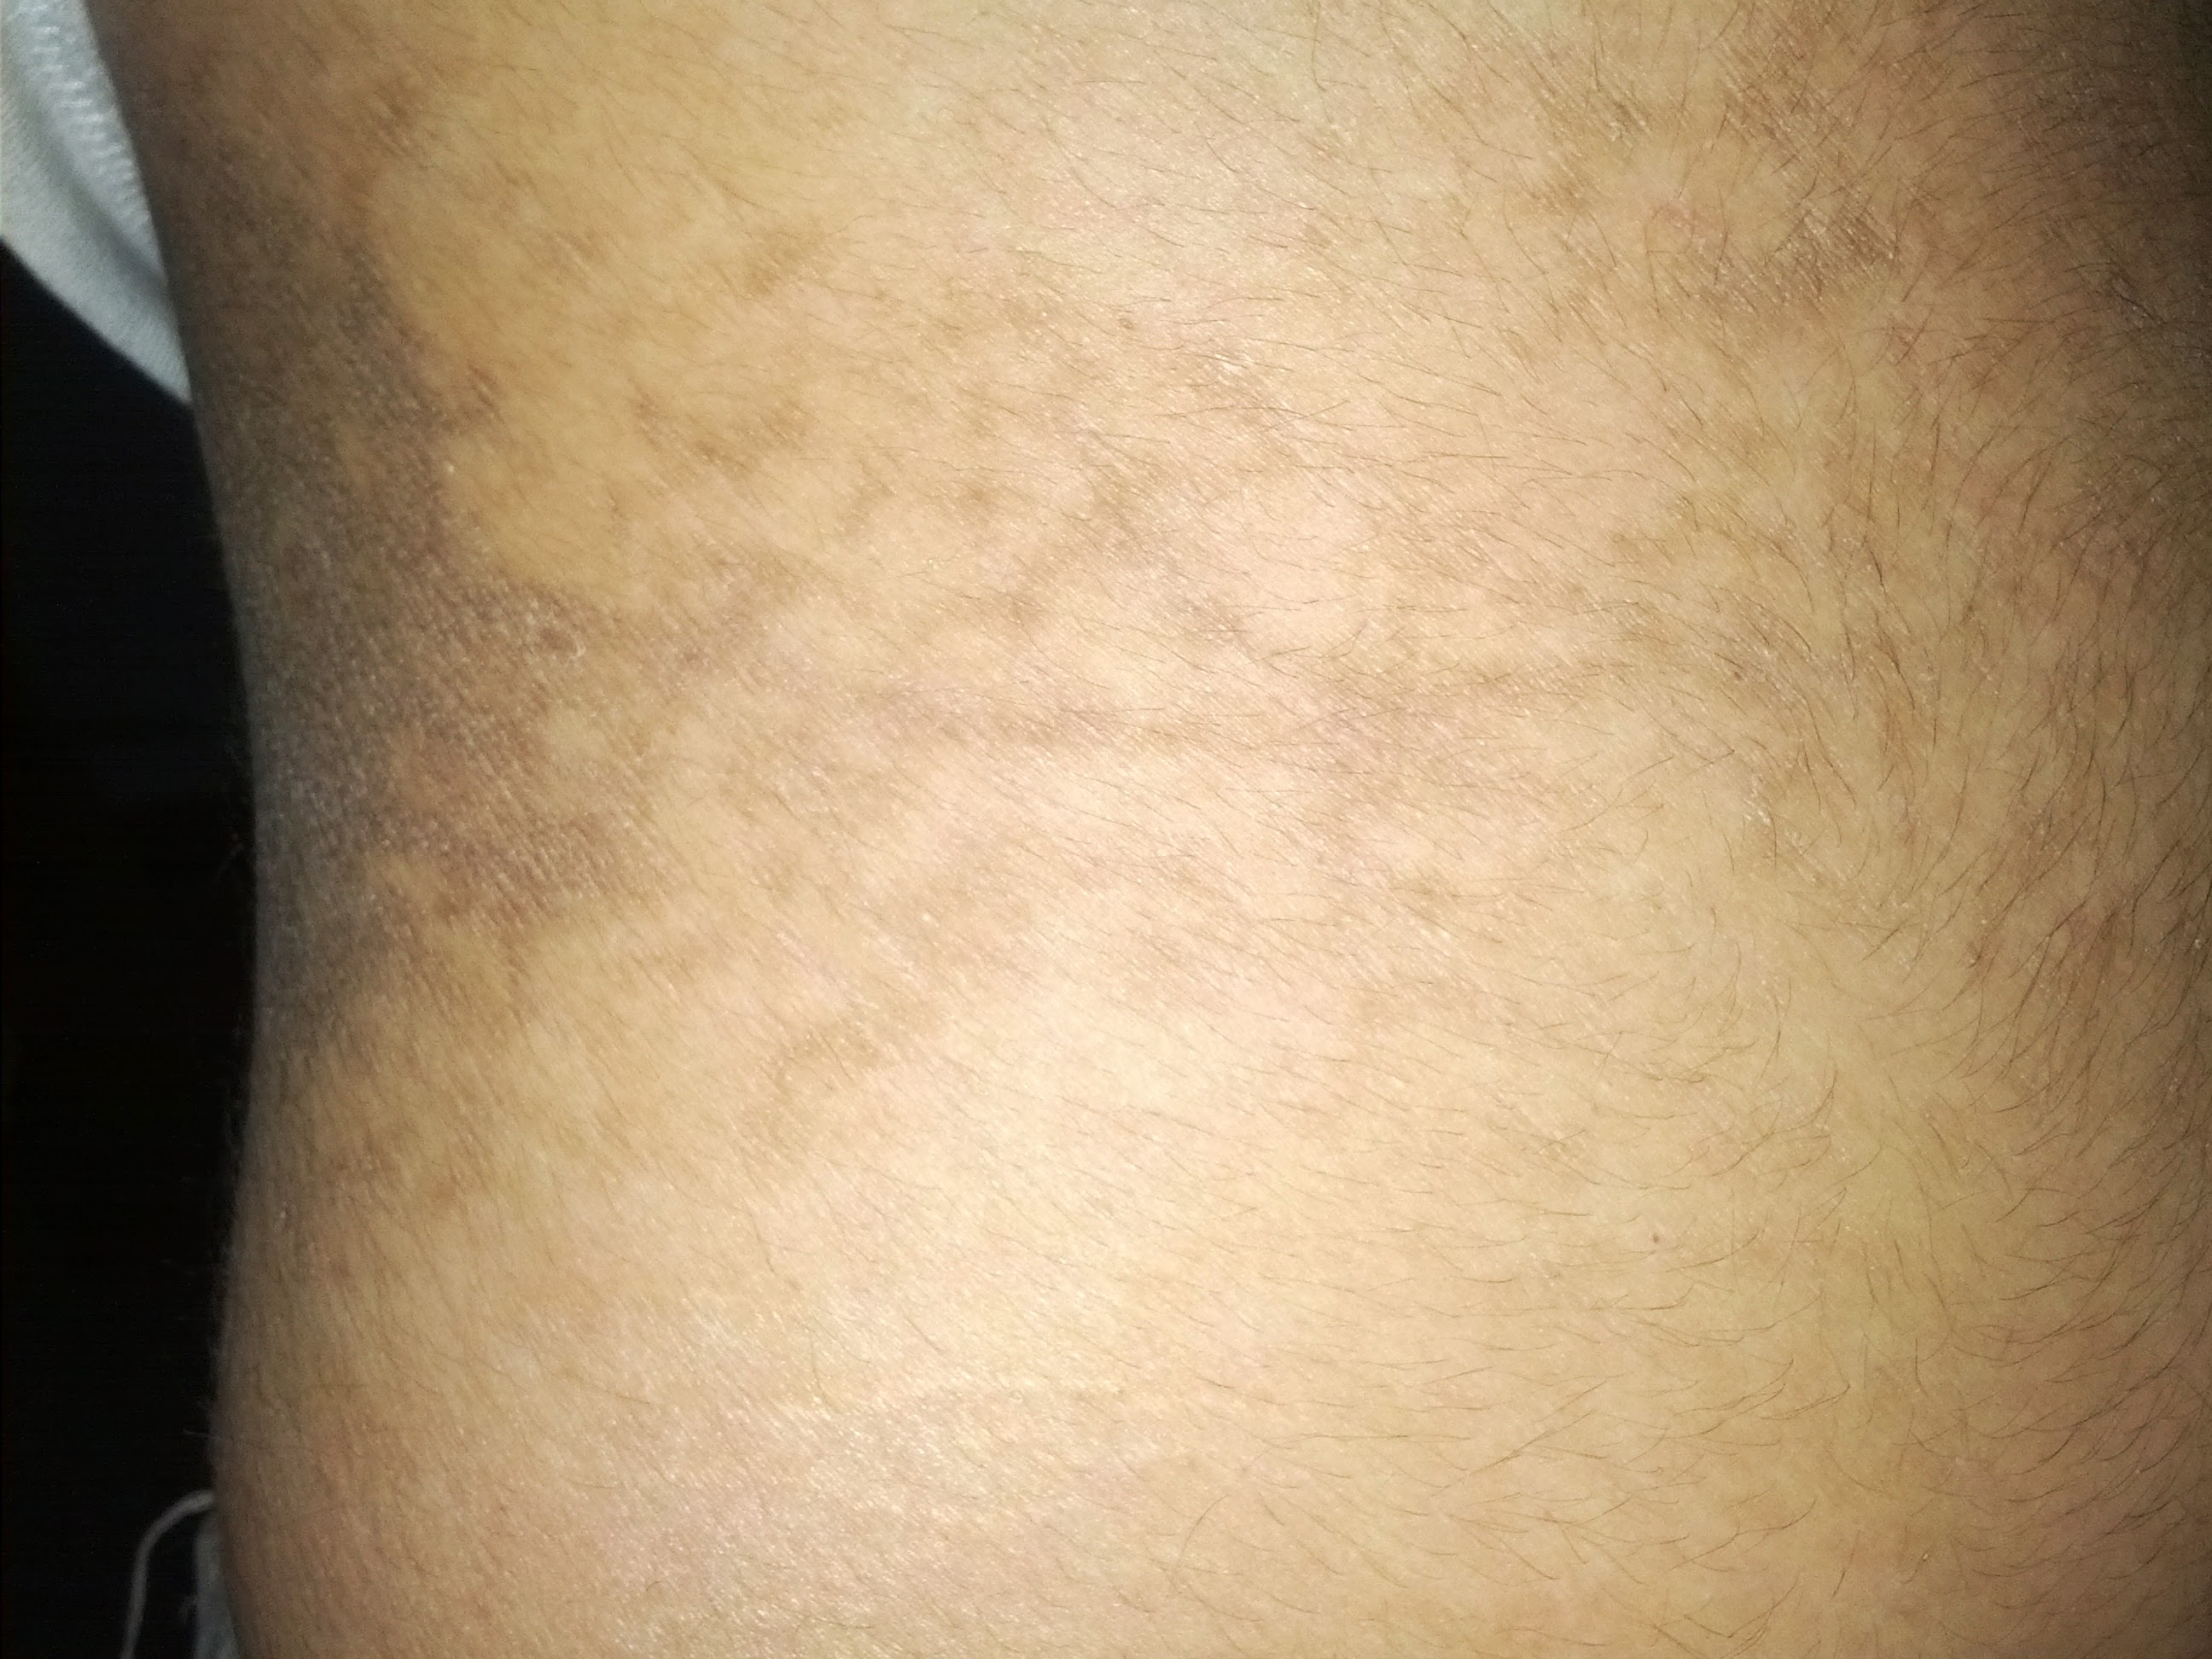 Arthitis that causes dry red patches